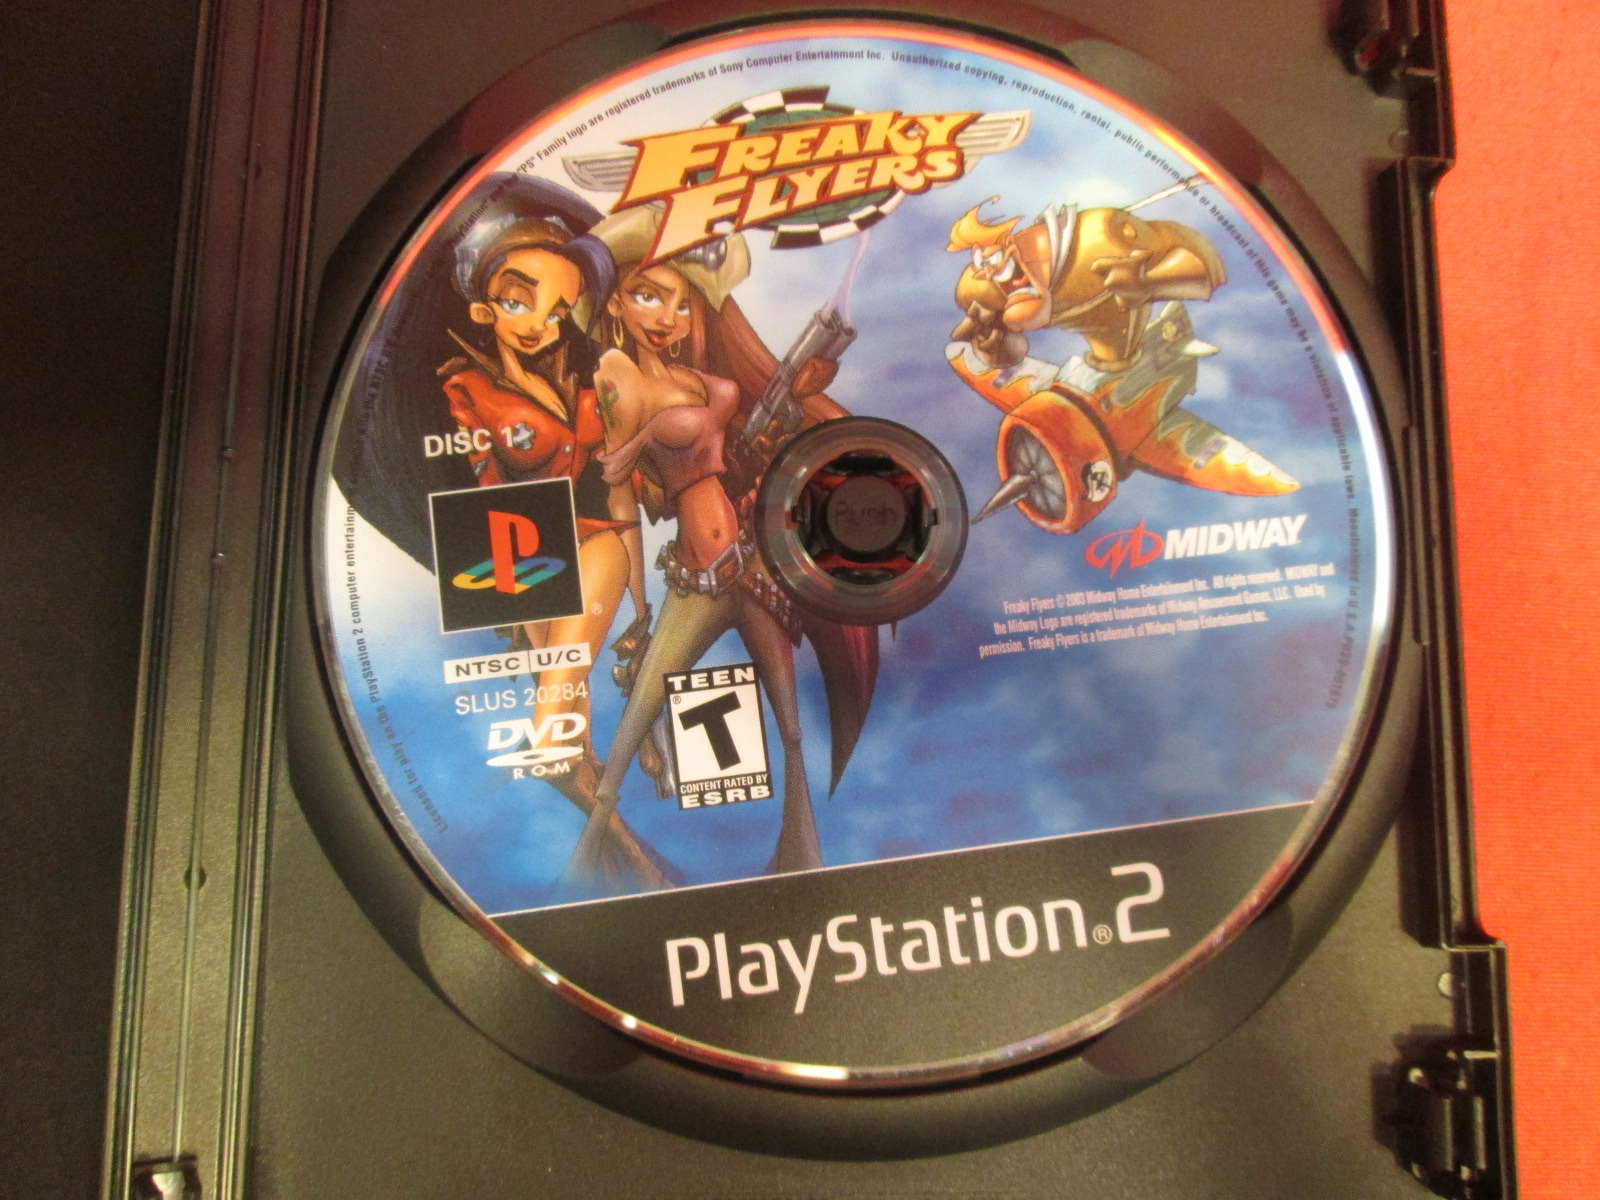 Replacement Disc 1 For Freaky Flyers For PlayStation 2